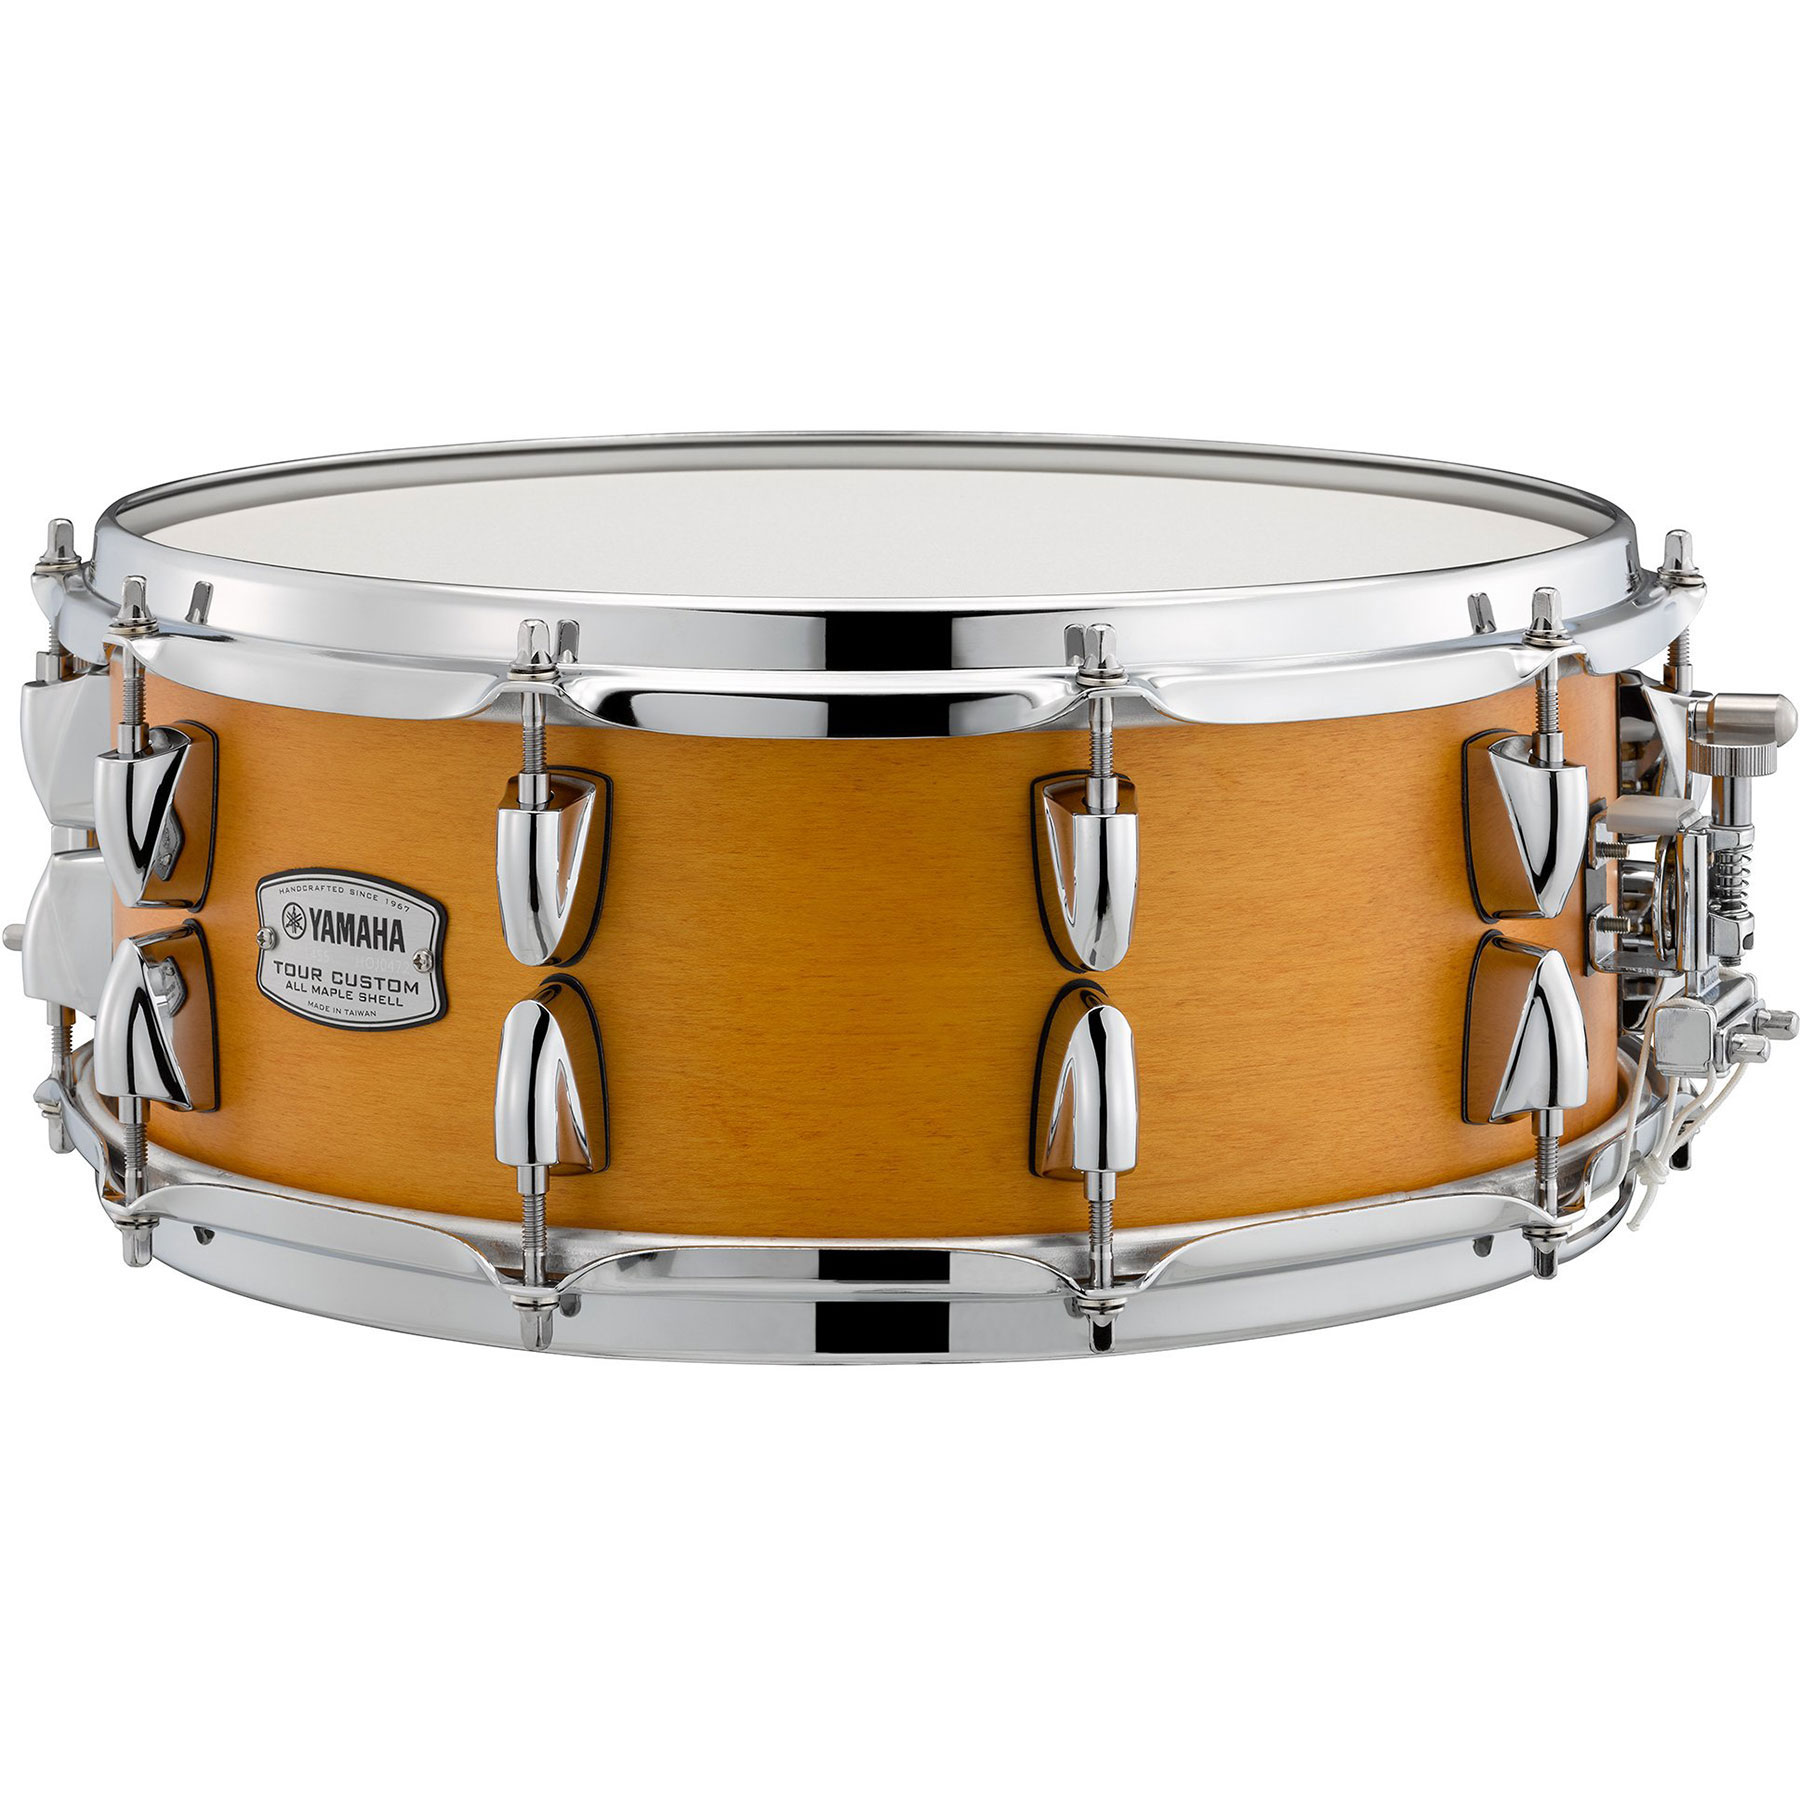 "Yamaha 14"" x 5.5"" Tour Custom Maple Snare Drum"